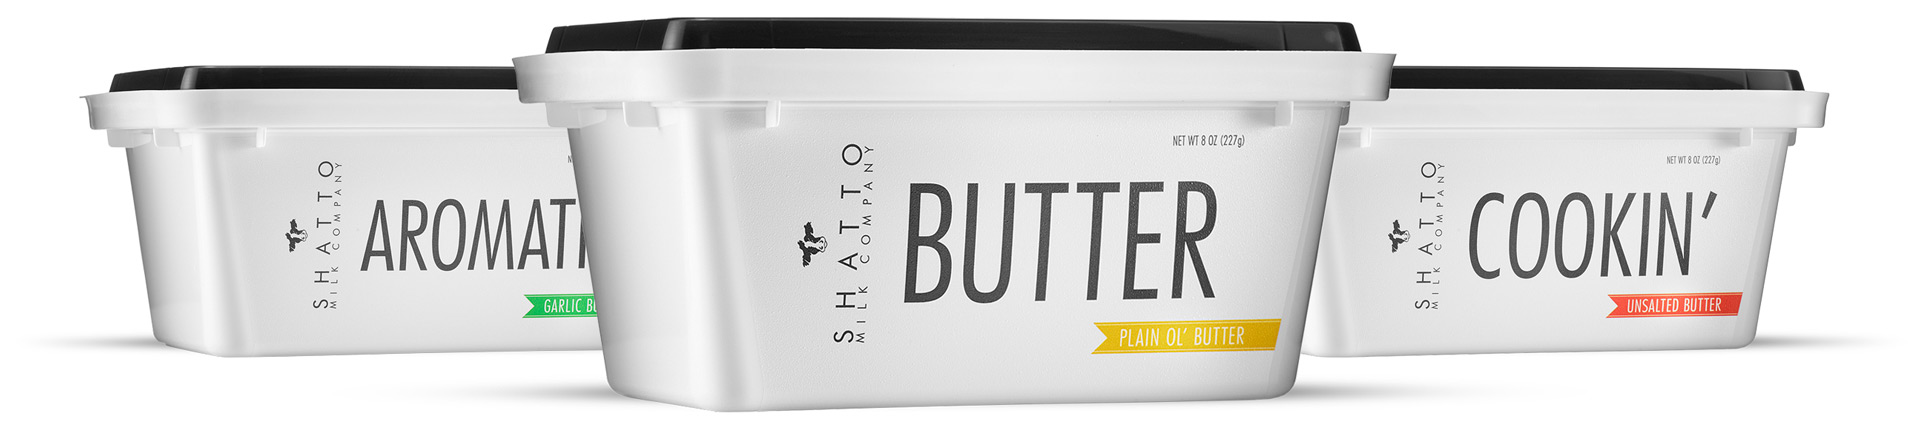 Three tubs of Shatto Milk Butter – each with large lettering that says: AROMATIC, BUTTER and COOKIN'